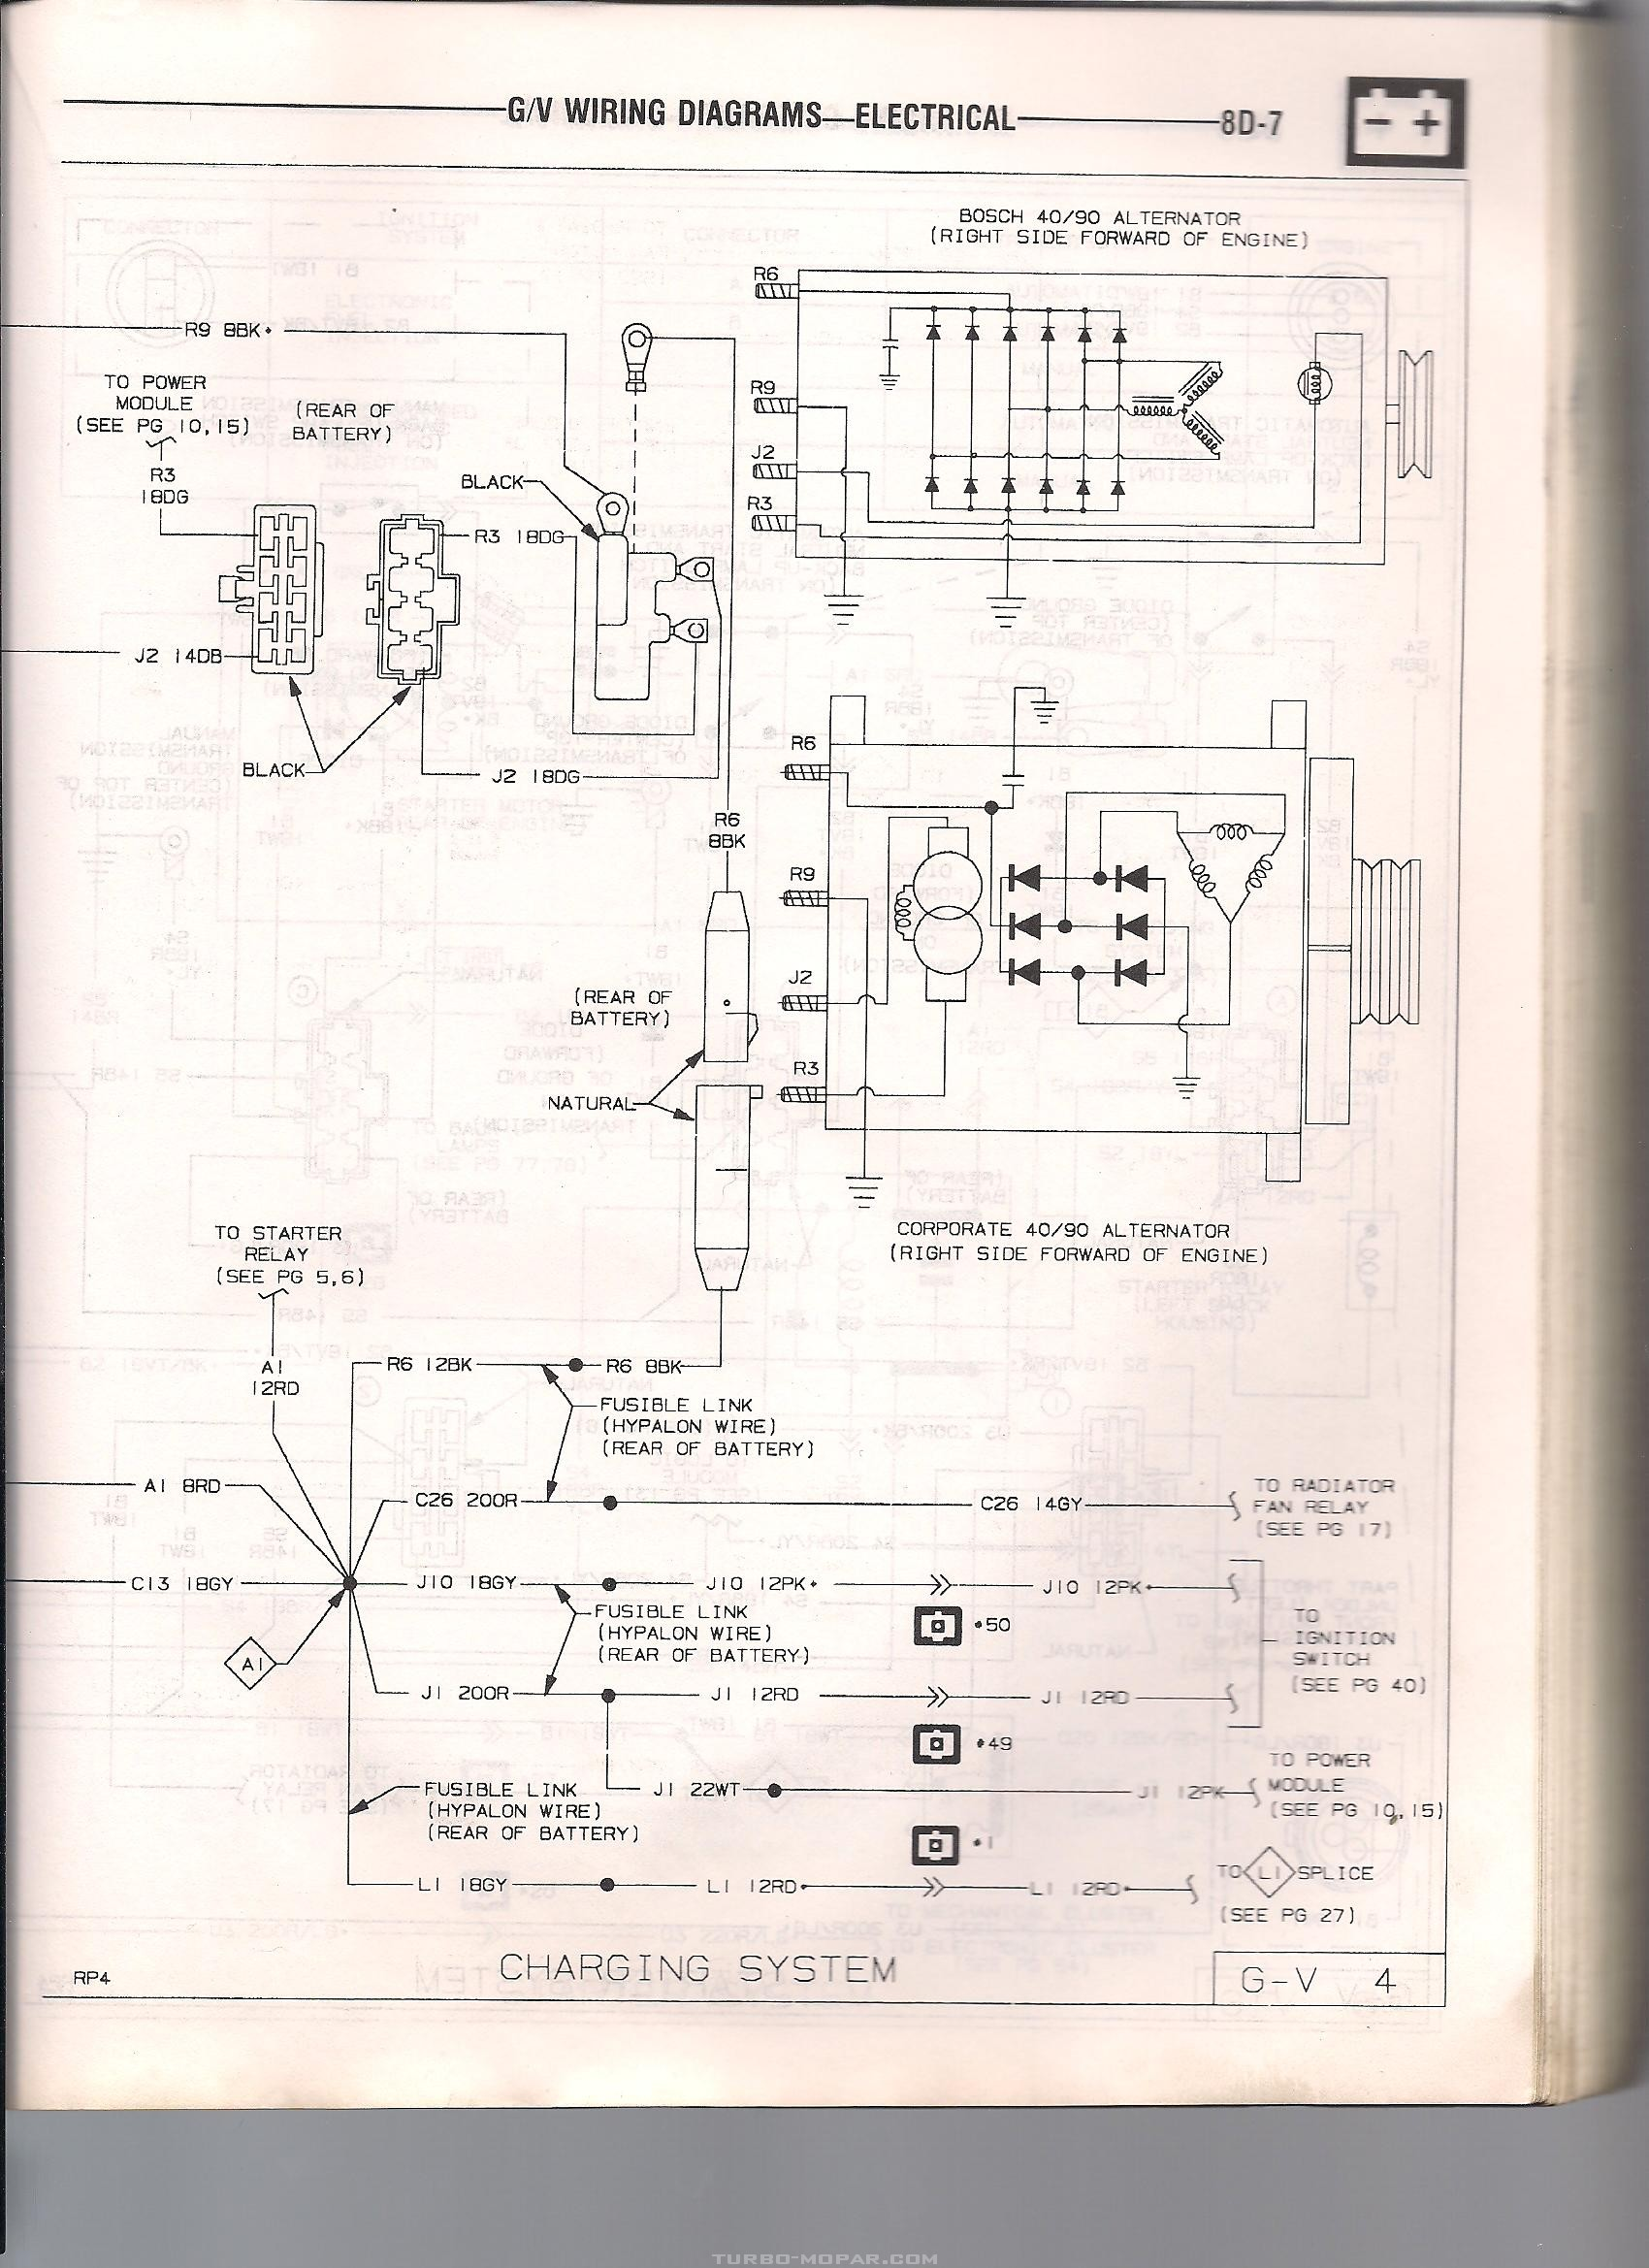 Wiring Diagram 1985 Dodge Shelby Charger About Omni Overcharging Glh